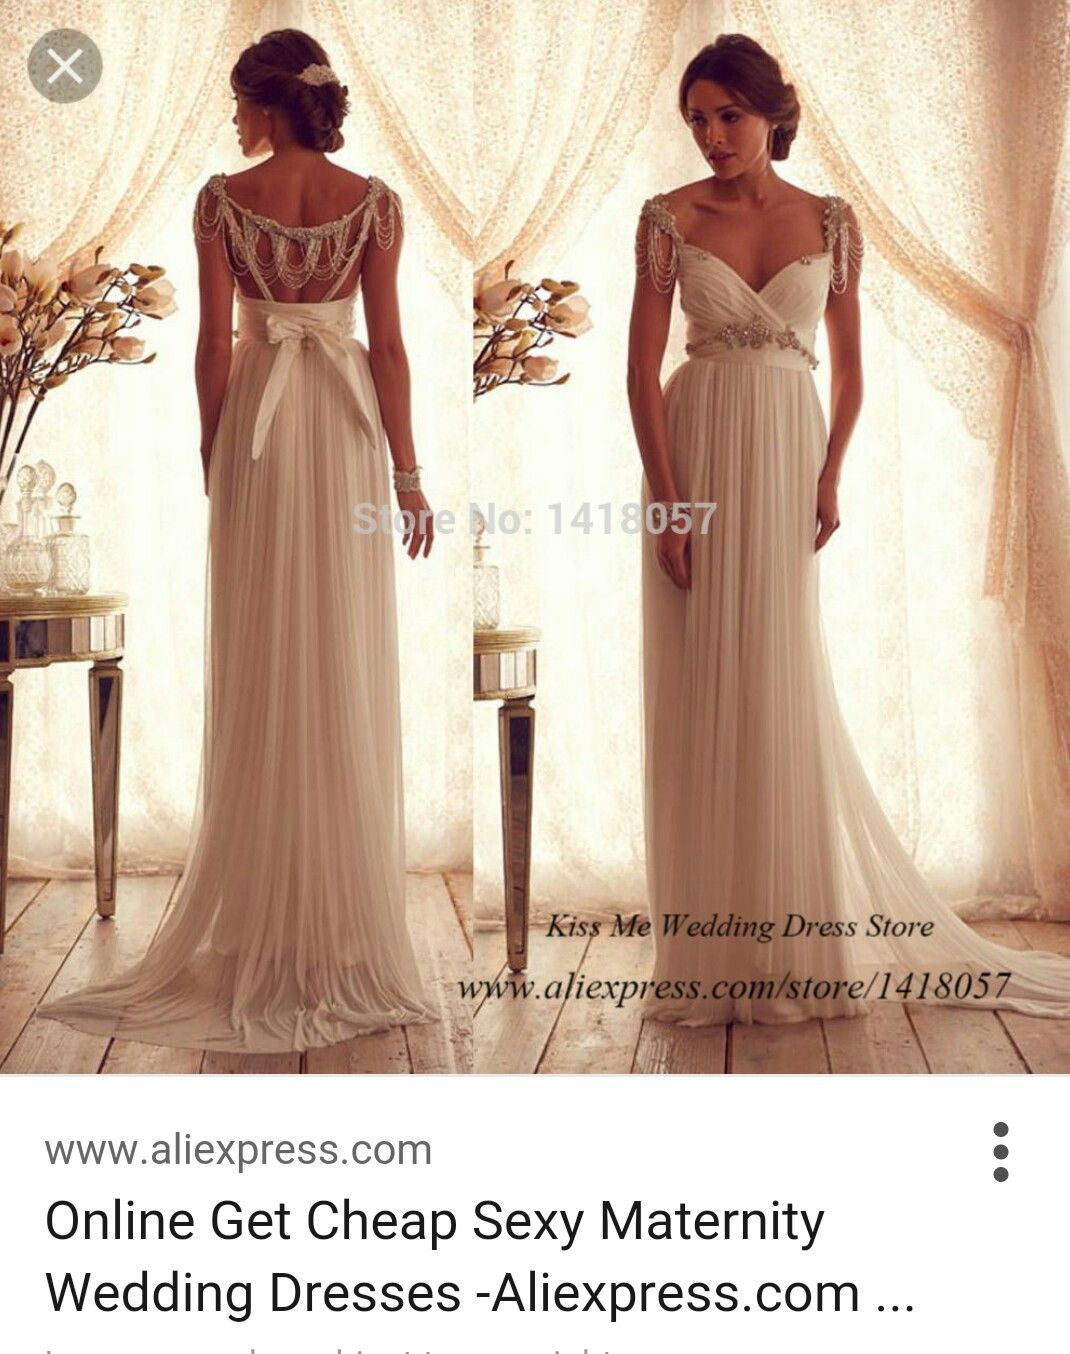 Wedding Stores Near Me.Maternity Wedding Dress Store Near Me